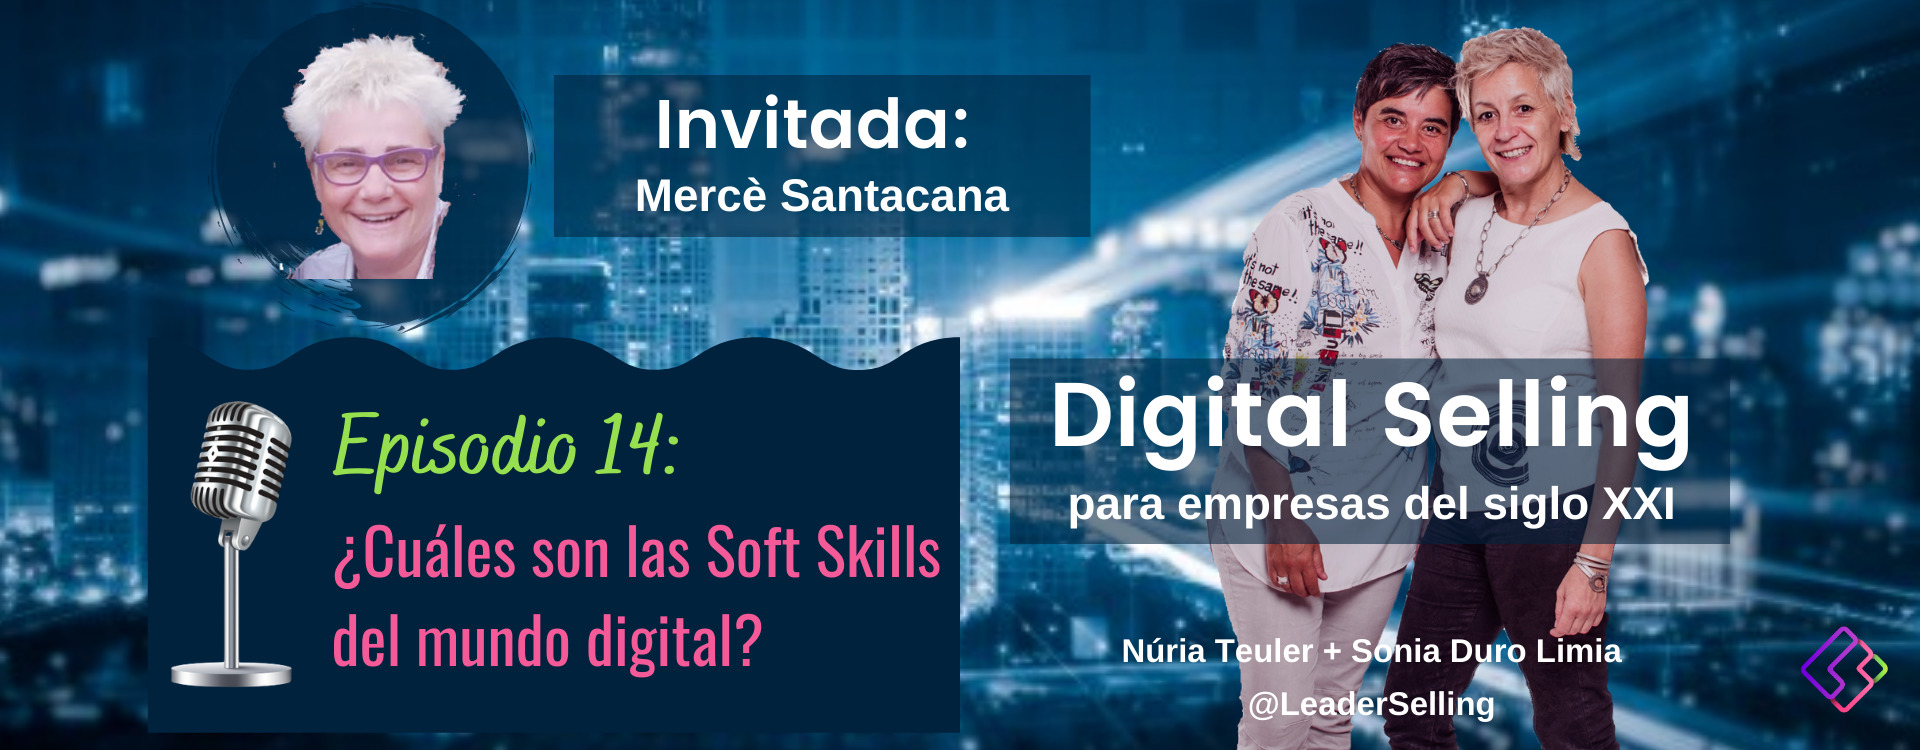 Episodio 14. ¿Cuáles son las Soft Skills del mundo digital?